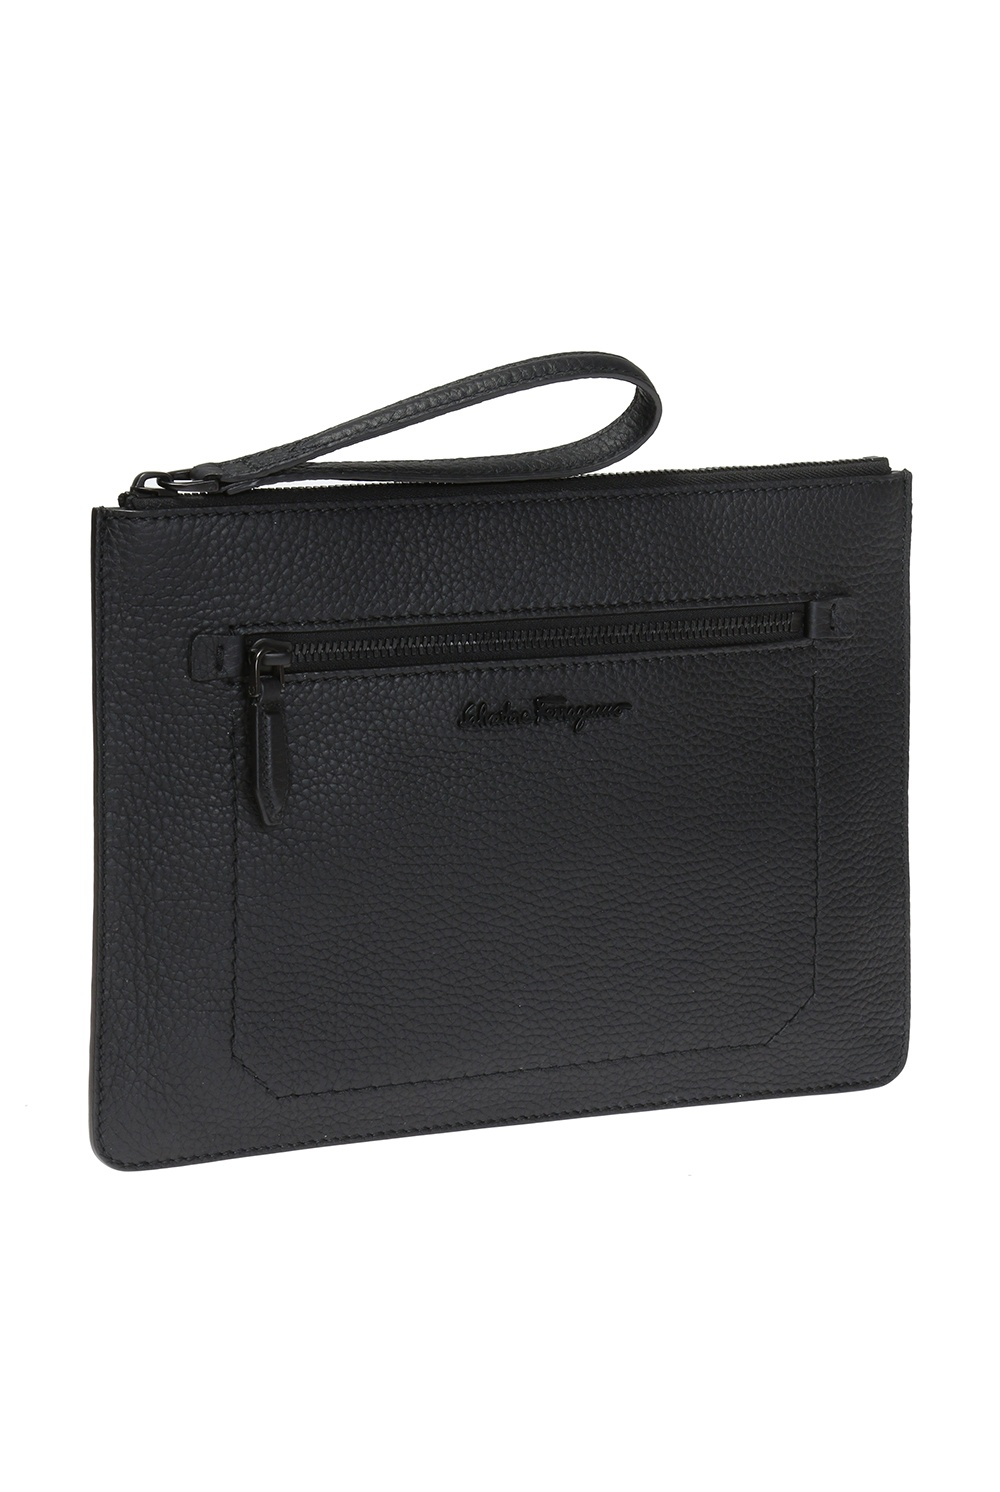 Salvatore Ferragamo Clutch with metal logo